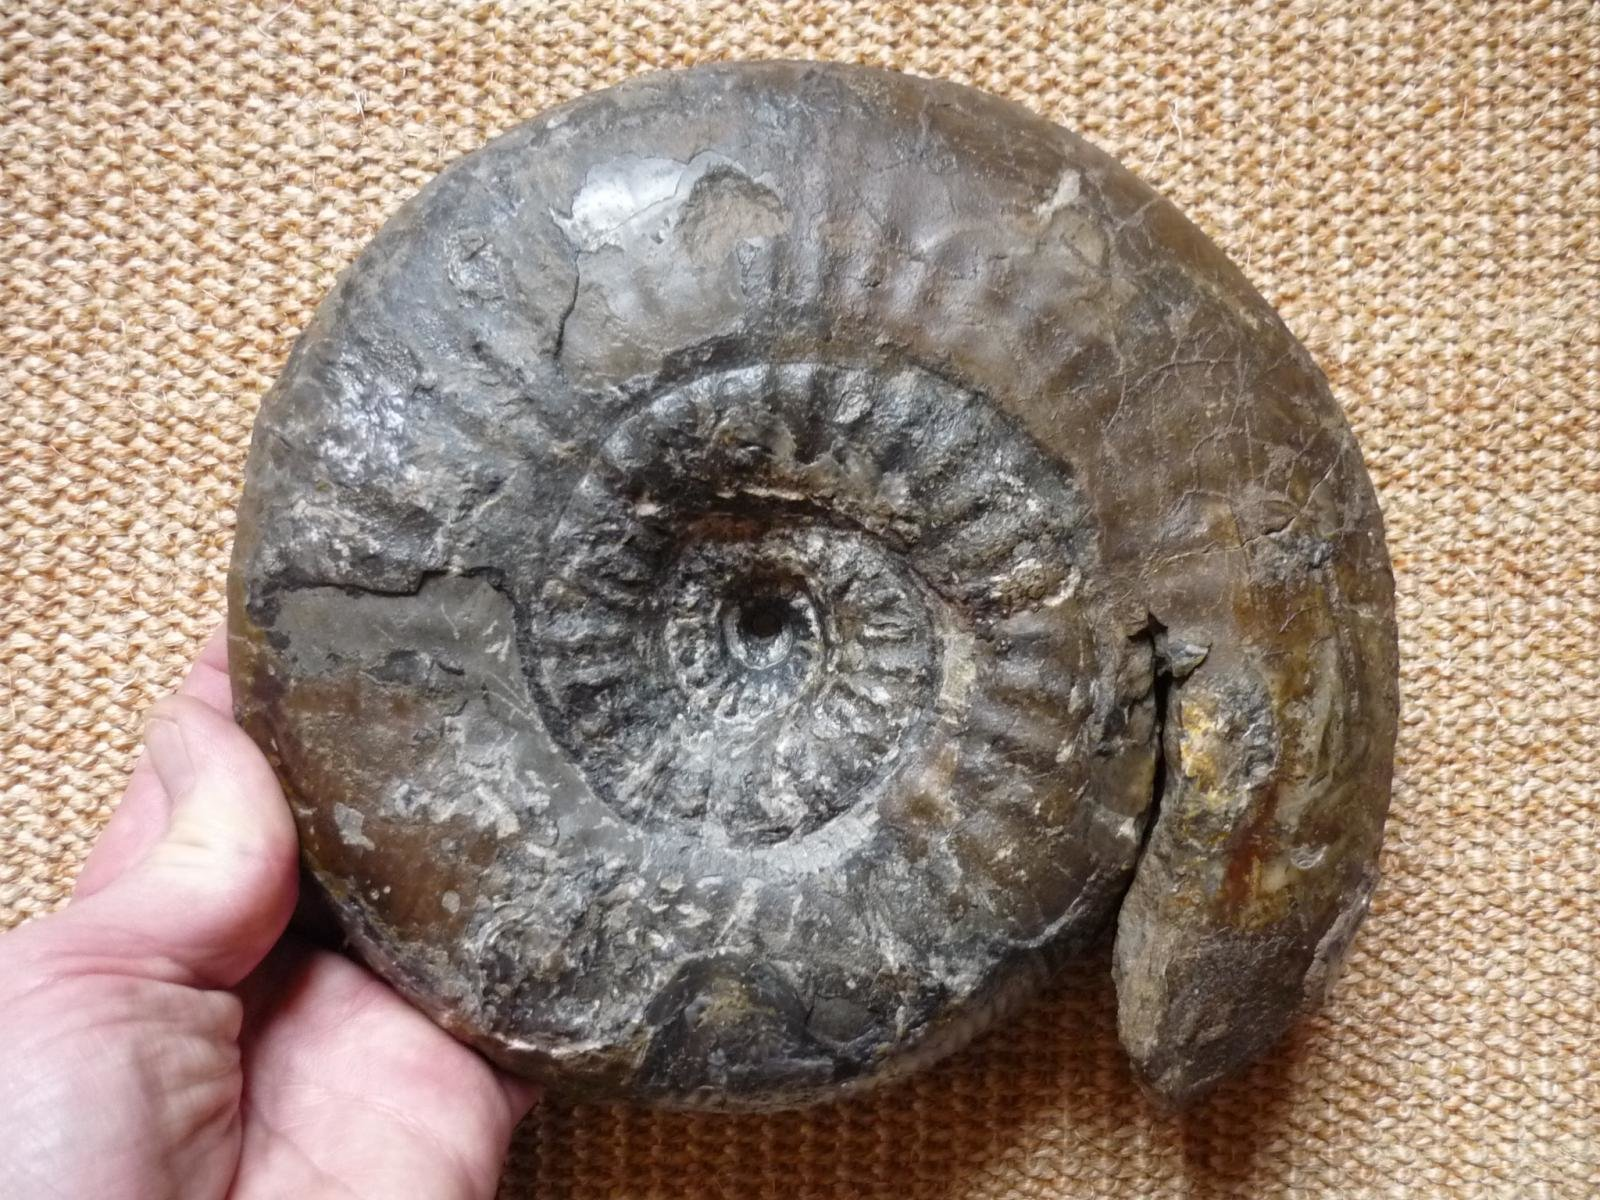 Middle Jurassic Ammonites from Southern Germany